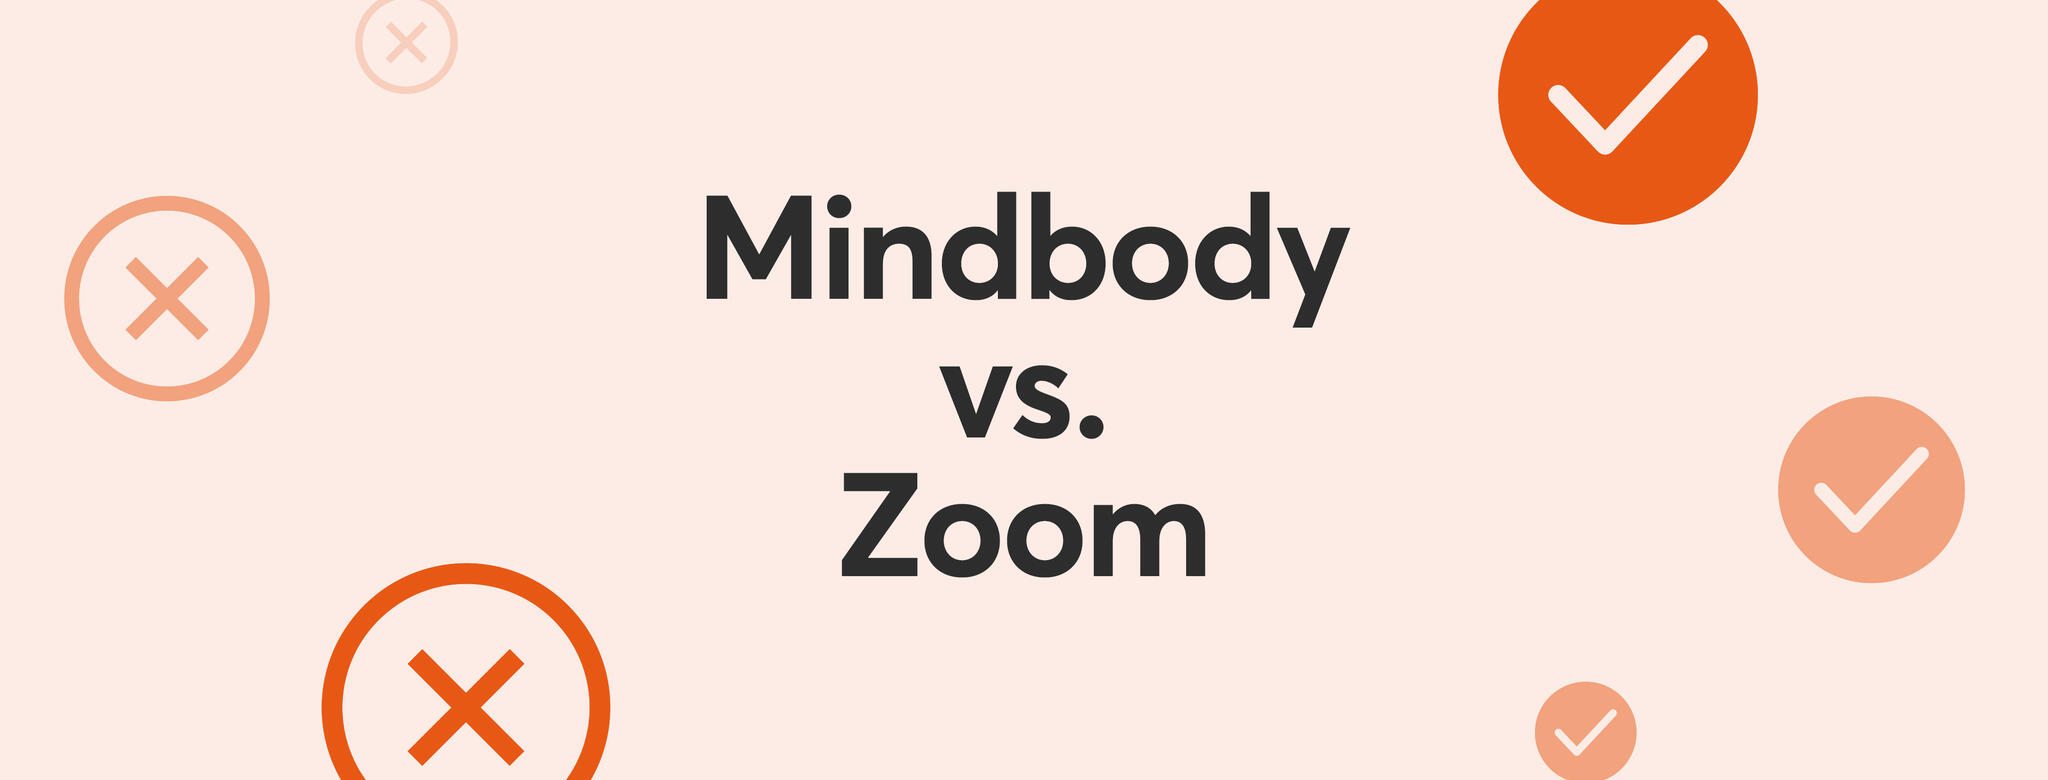 Minbody vs. Zoom